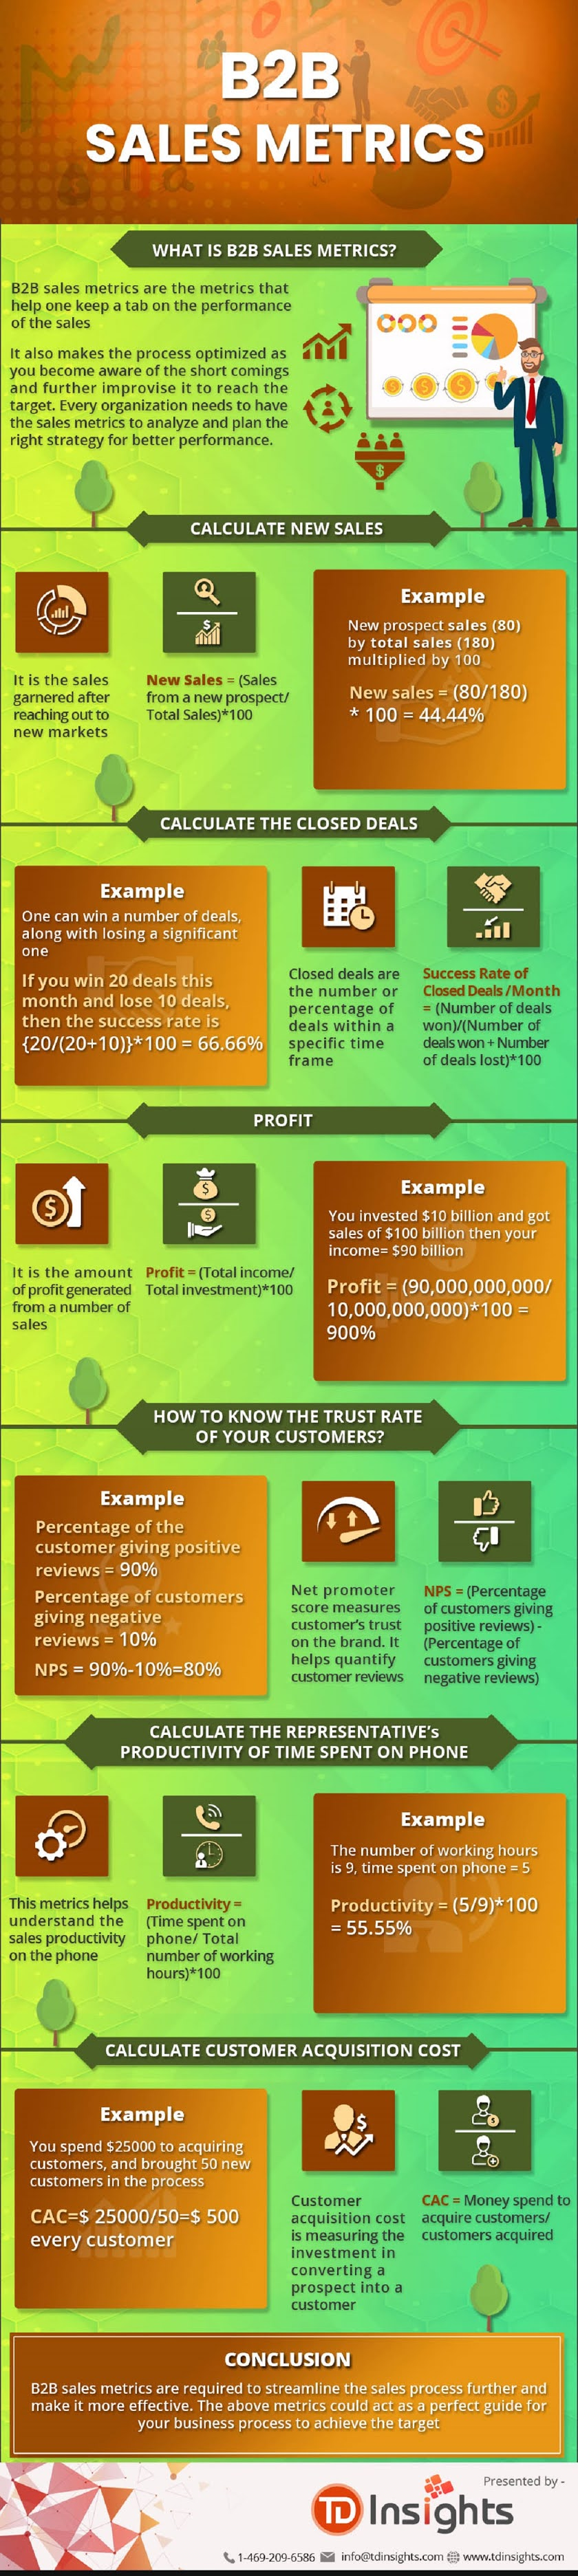 6-crucial-b2b-metrics-you-should-be-tracking-as-a-smart-sales-leader-infographic